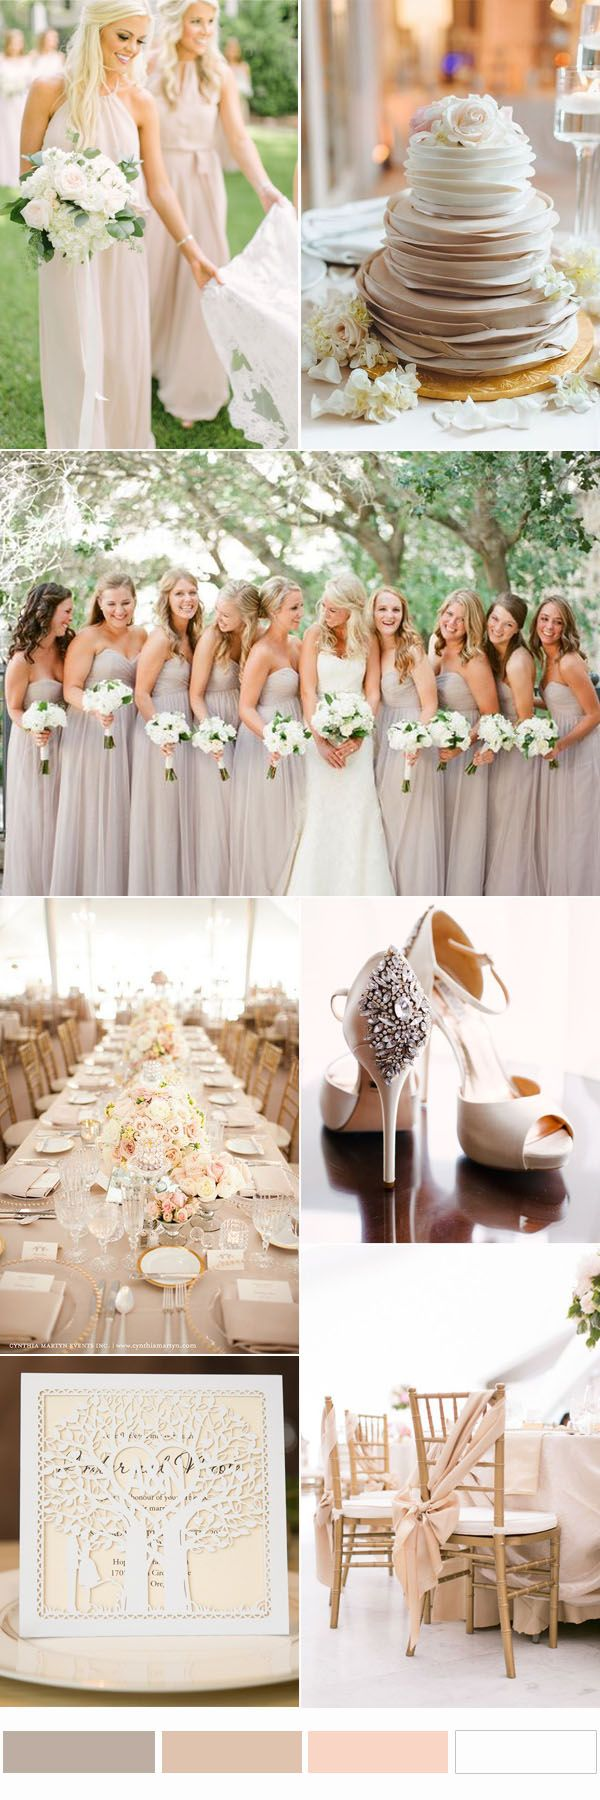 Best 25 wedding colors ideas on pinterest fall wedding colors 9 most popular wedding color schemes from pinterest to your wedding inspiration junglespirit